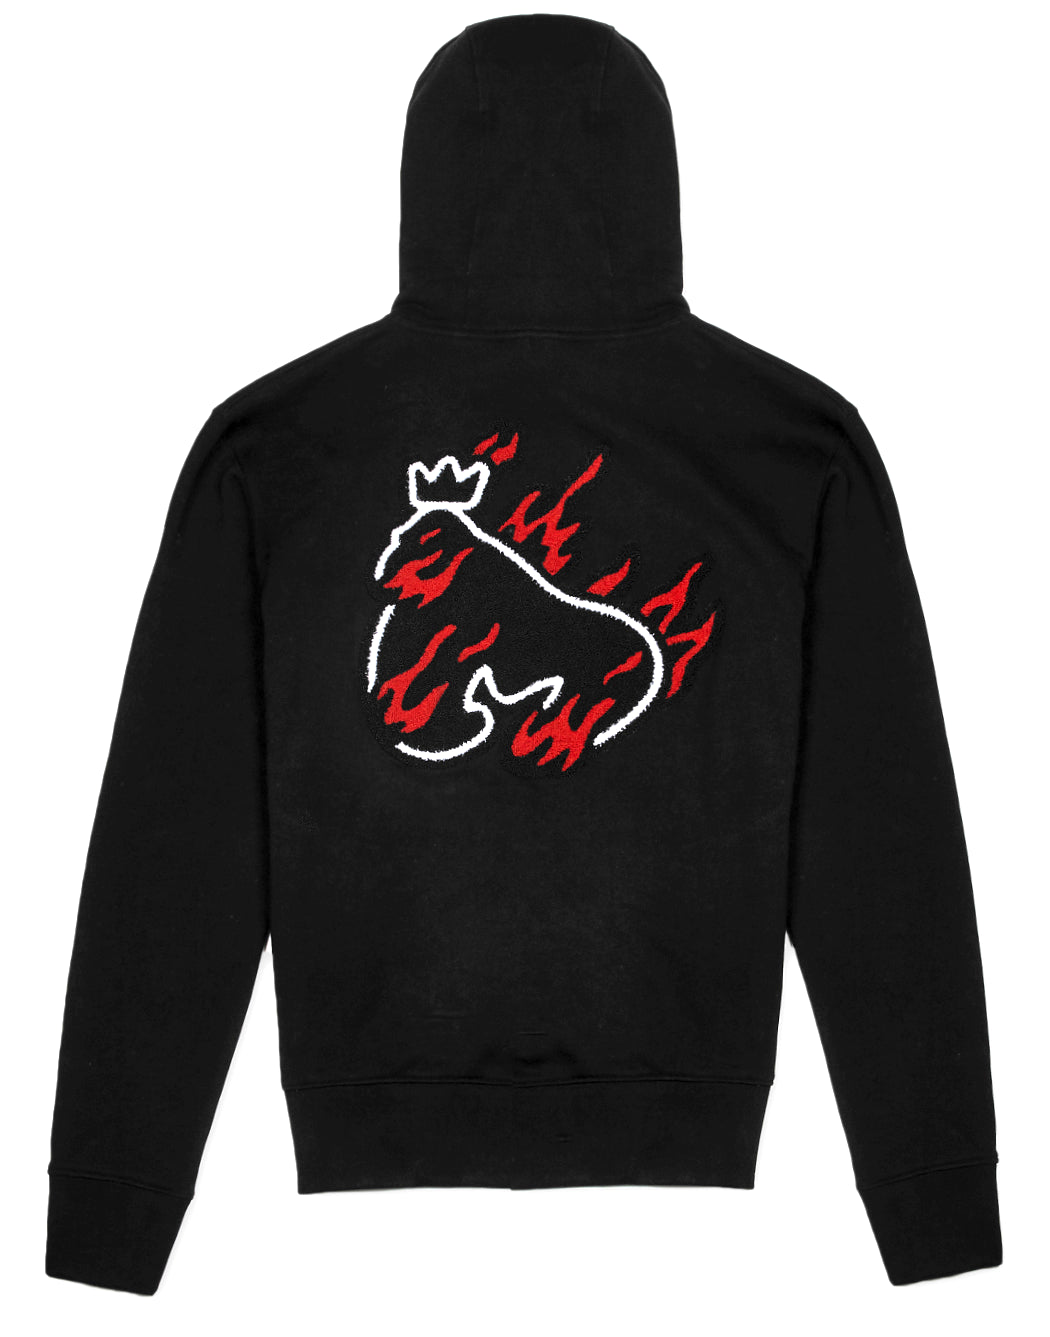 Money Clothing hooded jumper in black